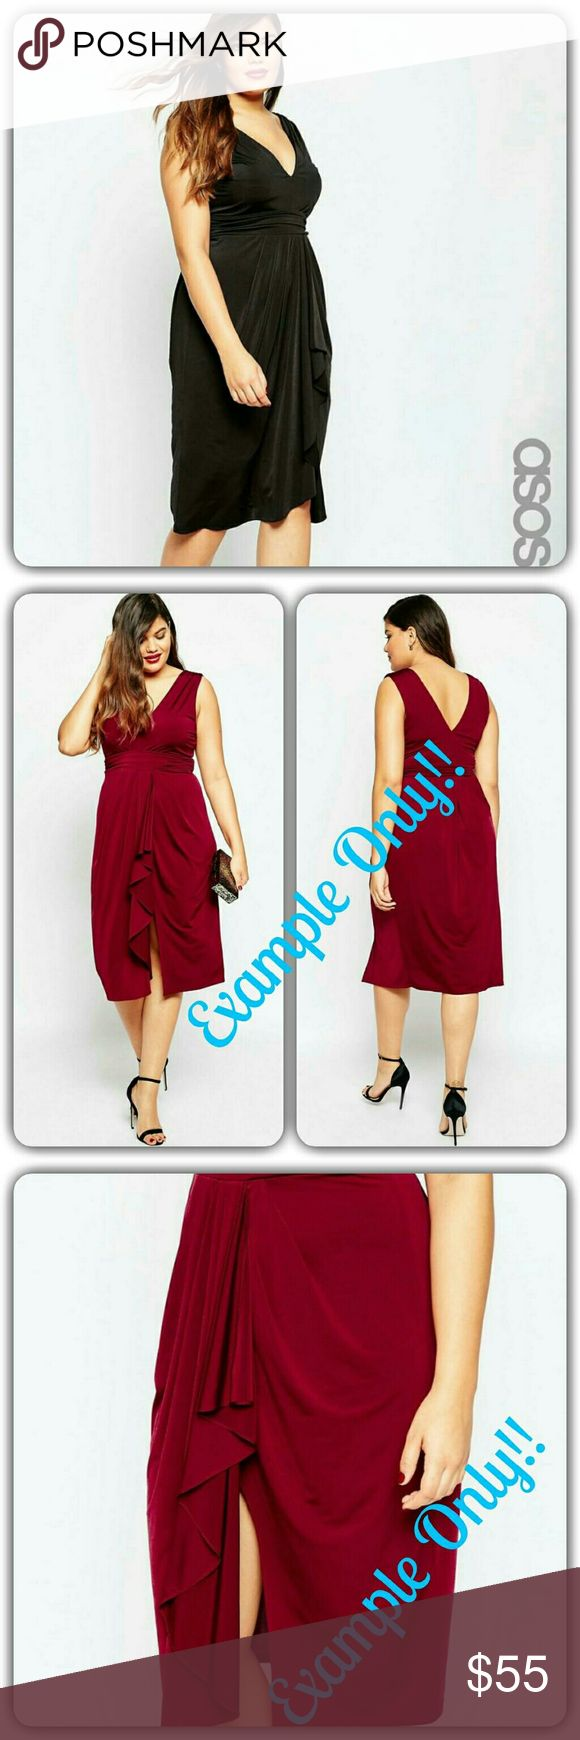 ASOS CURVE Drape Front Midi Dress uk 18 us 14 PLUS-SIZE DRESS?BY?ASOS CURVE Slinky stretch fabric Lightweight design V-neckline Empire waist Draping to front Thigh split Regular fit ?-true to size Machine wash 96% Polyester, 4% Elastane model wears a UK 18/EU 46/US 14 and is?180 cm/5'11??tall  ABOUT ME  Lining: 100% Polyester, Main: 96% Polyester, 4% Elastane.  SIZE & FIT  Model wears: UK 18/ EU 46/ US 14 Model's height: 180 cm/5'11?  LOOK AFTER ME  Machine Wash According To Instructions On…